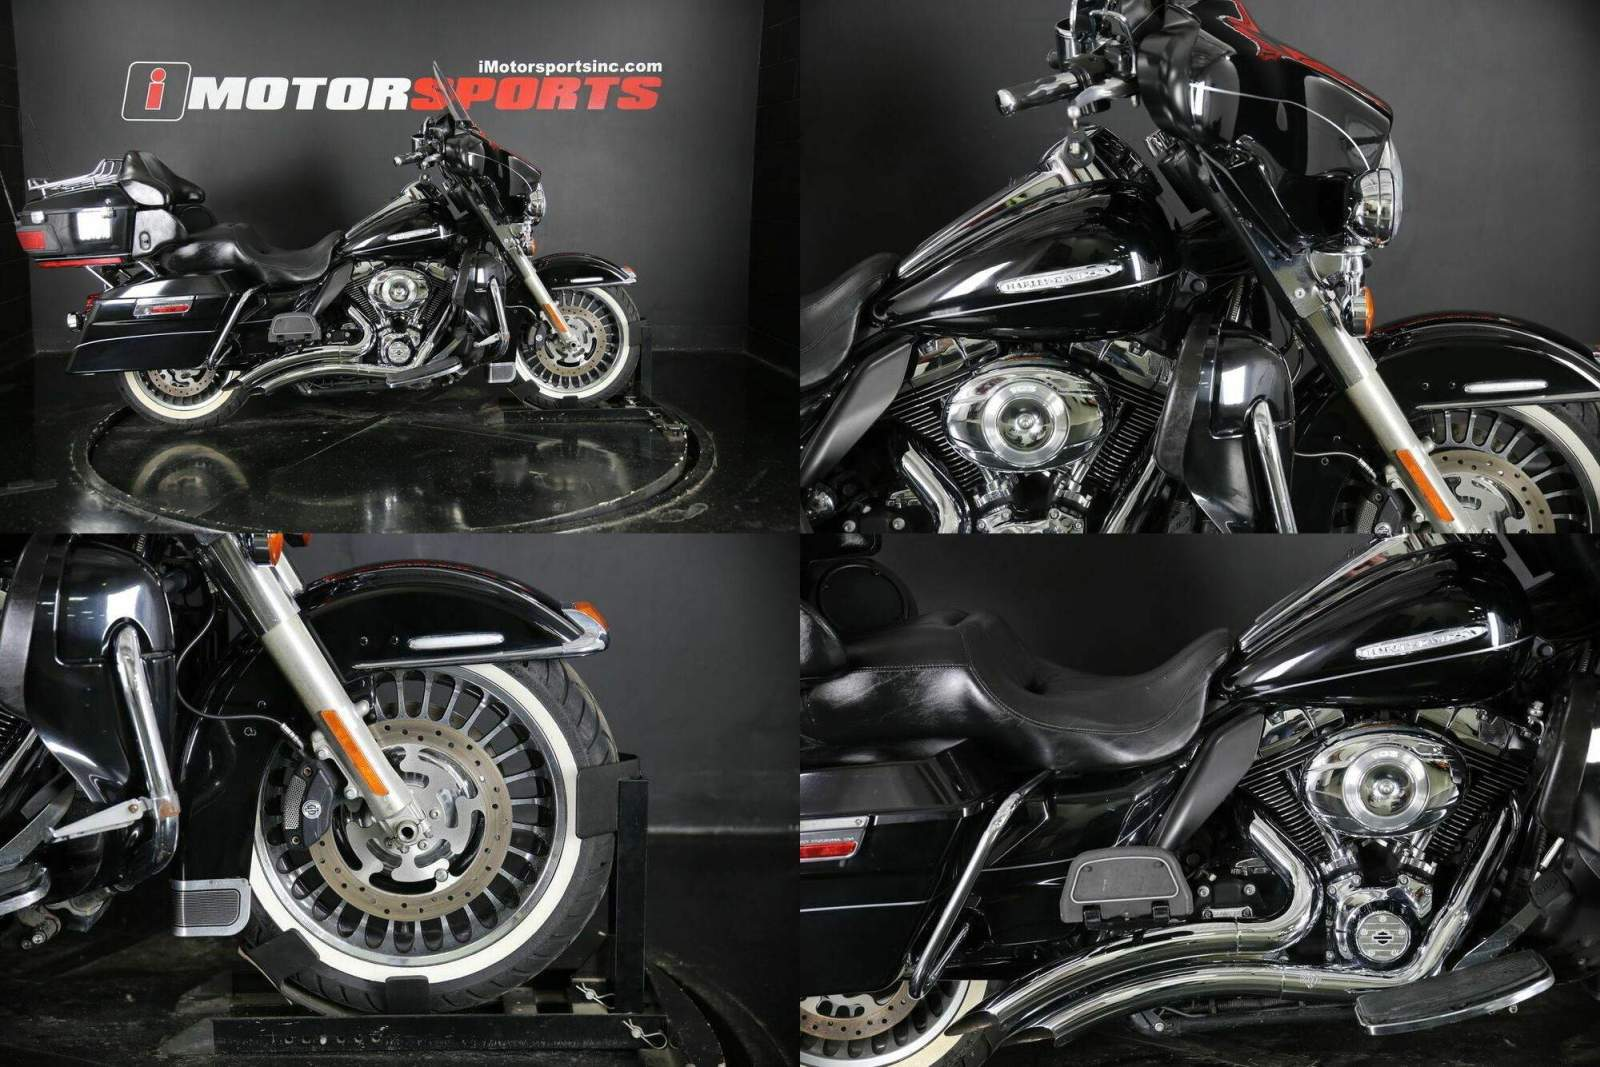 2013 Harley-Davidson FLHTK - Electra Glide Ultra Limited Black used for sale